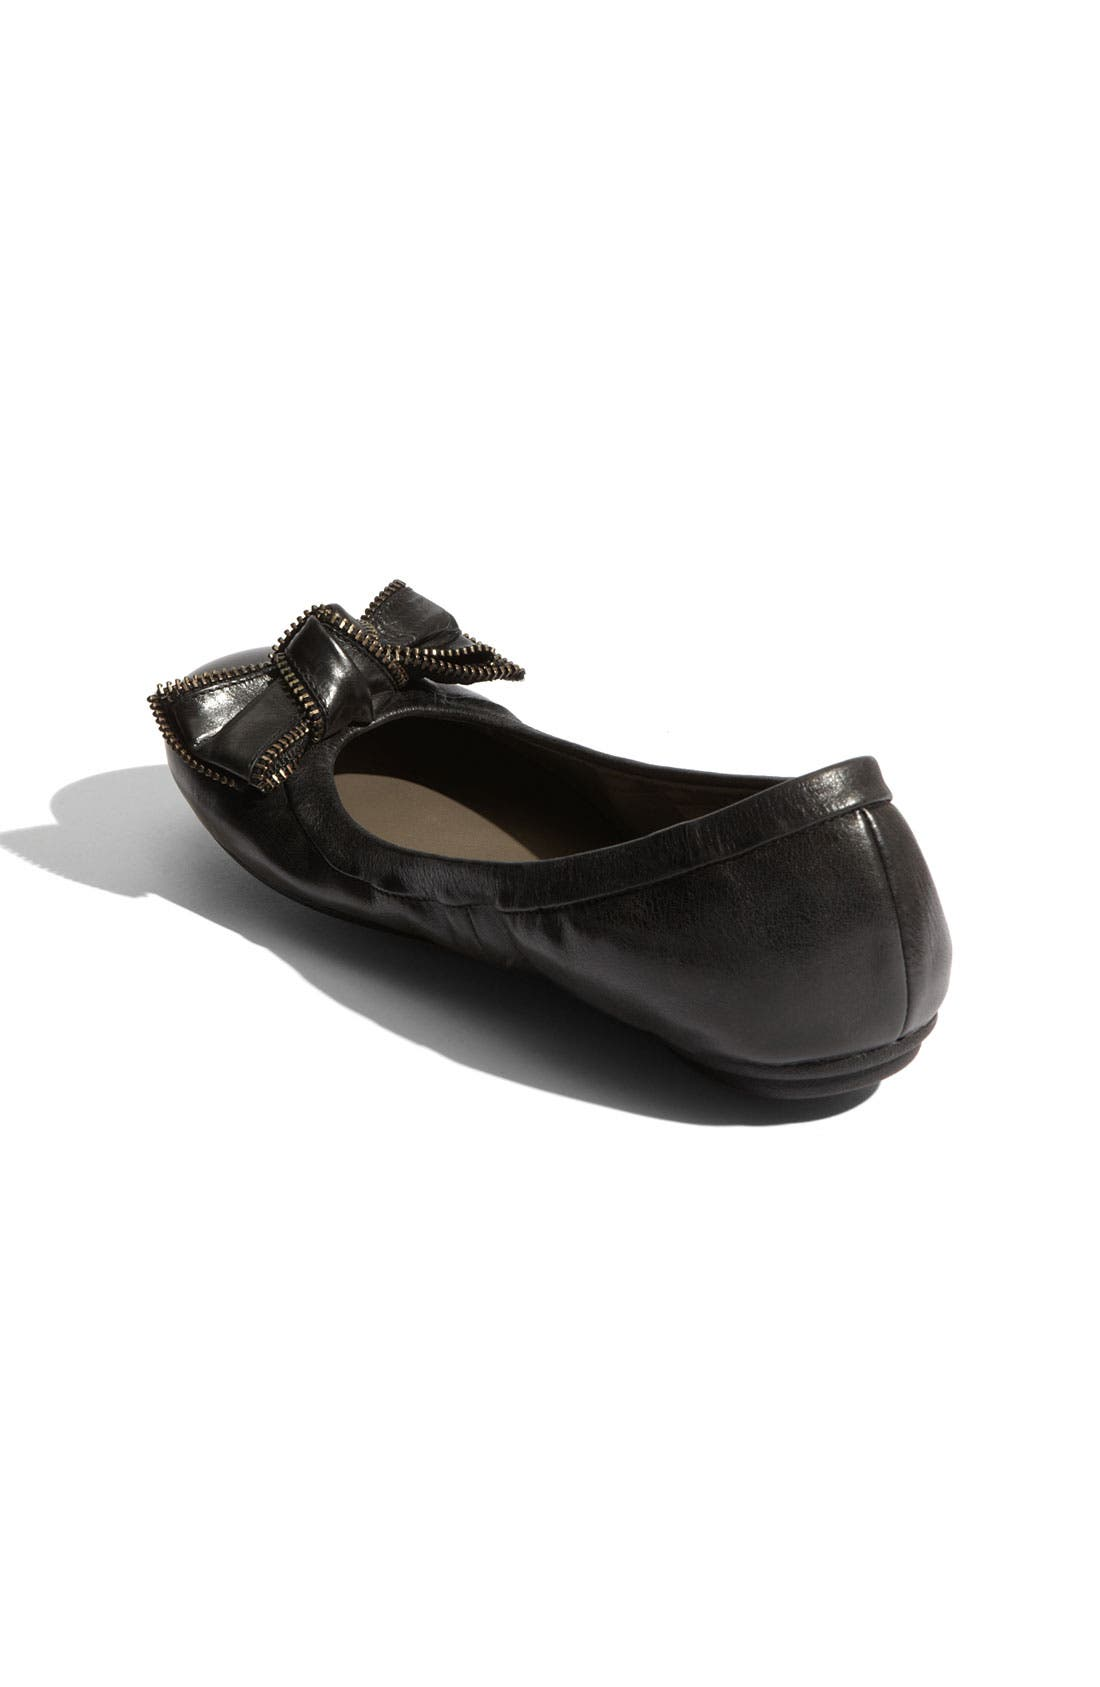 Alternate Image 2  - Nordstrom 'Tessa' Flat (Walker, Toddler, Little Kid & Big Kid) (Special Purchase)